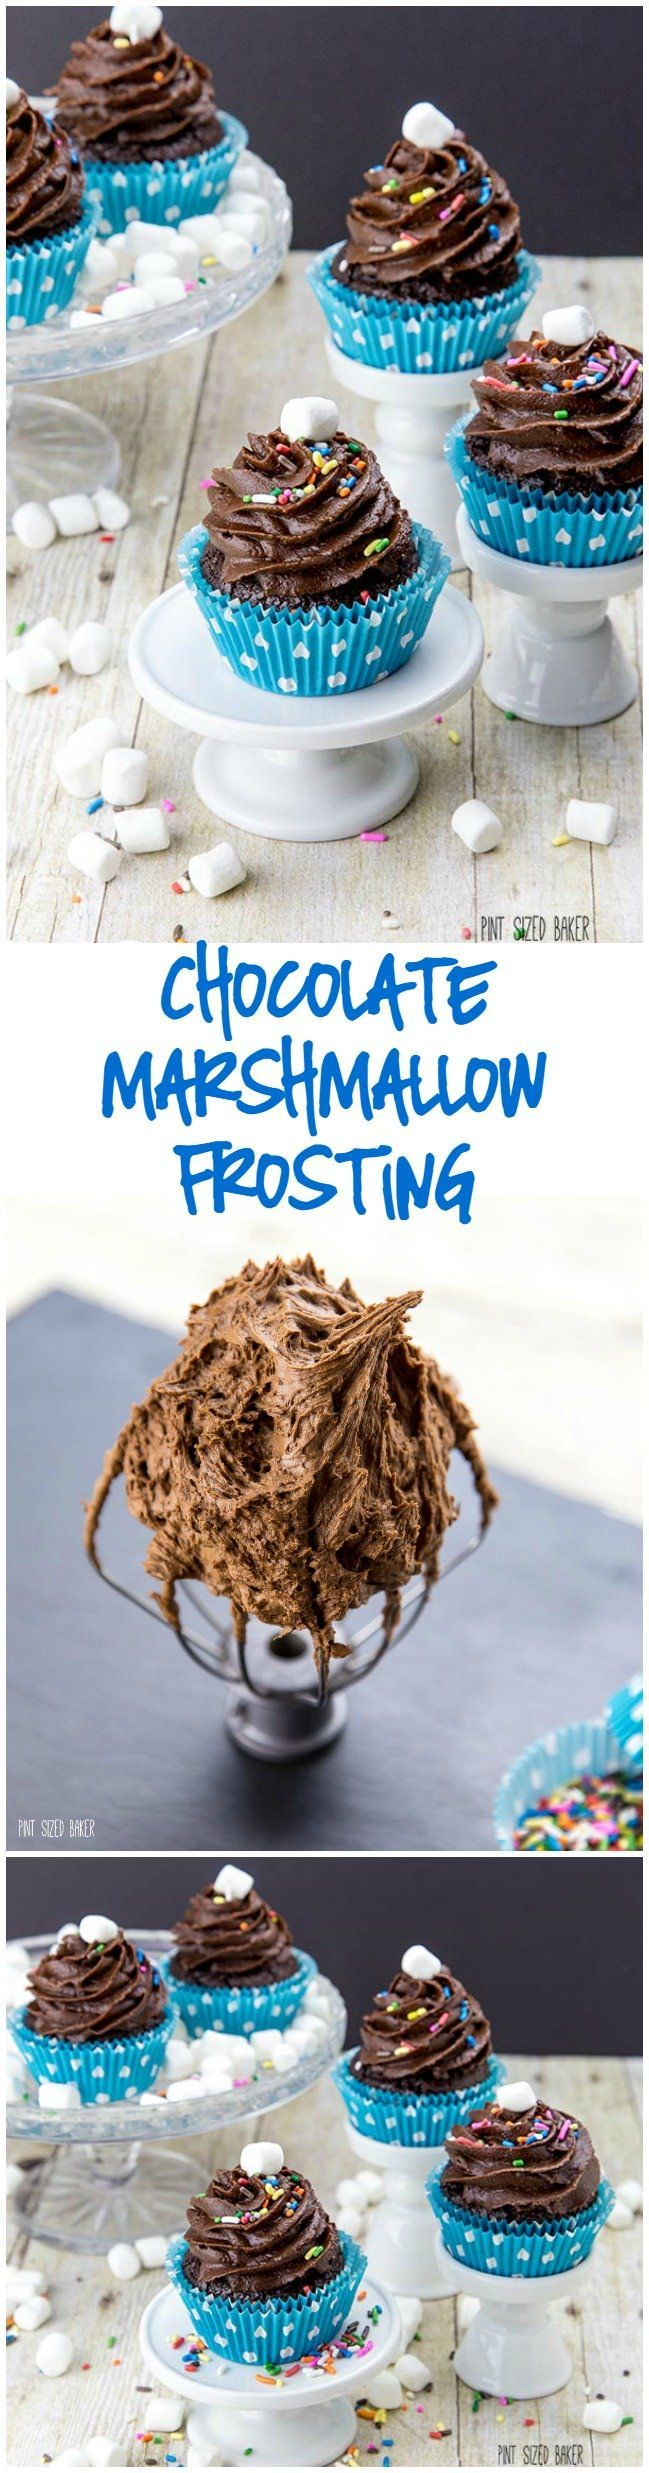 Simply the best Chocolate Marshmallow Frosting recipe. It makes some of the best cupcakes even better!